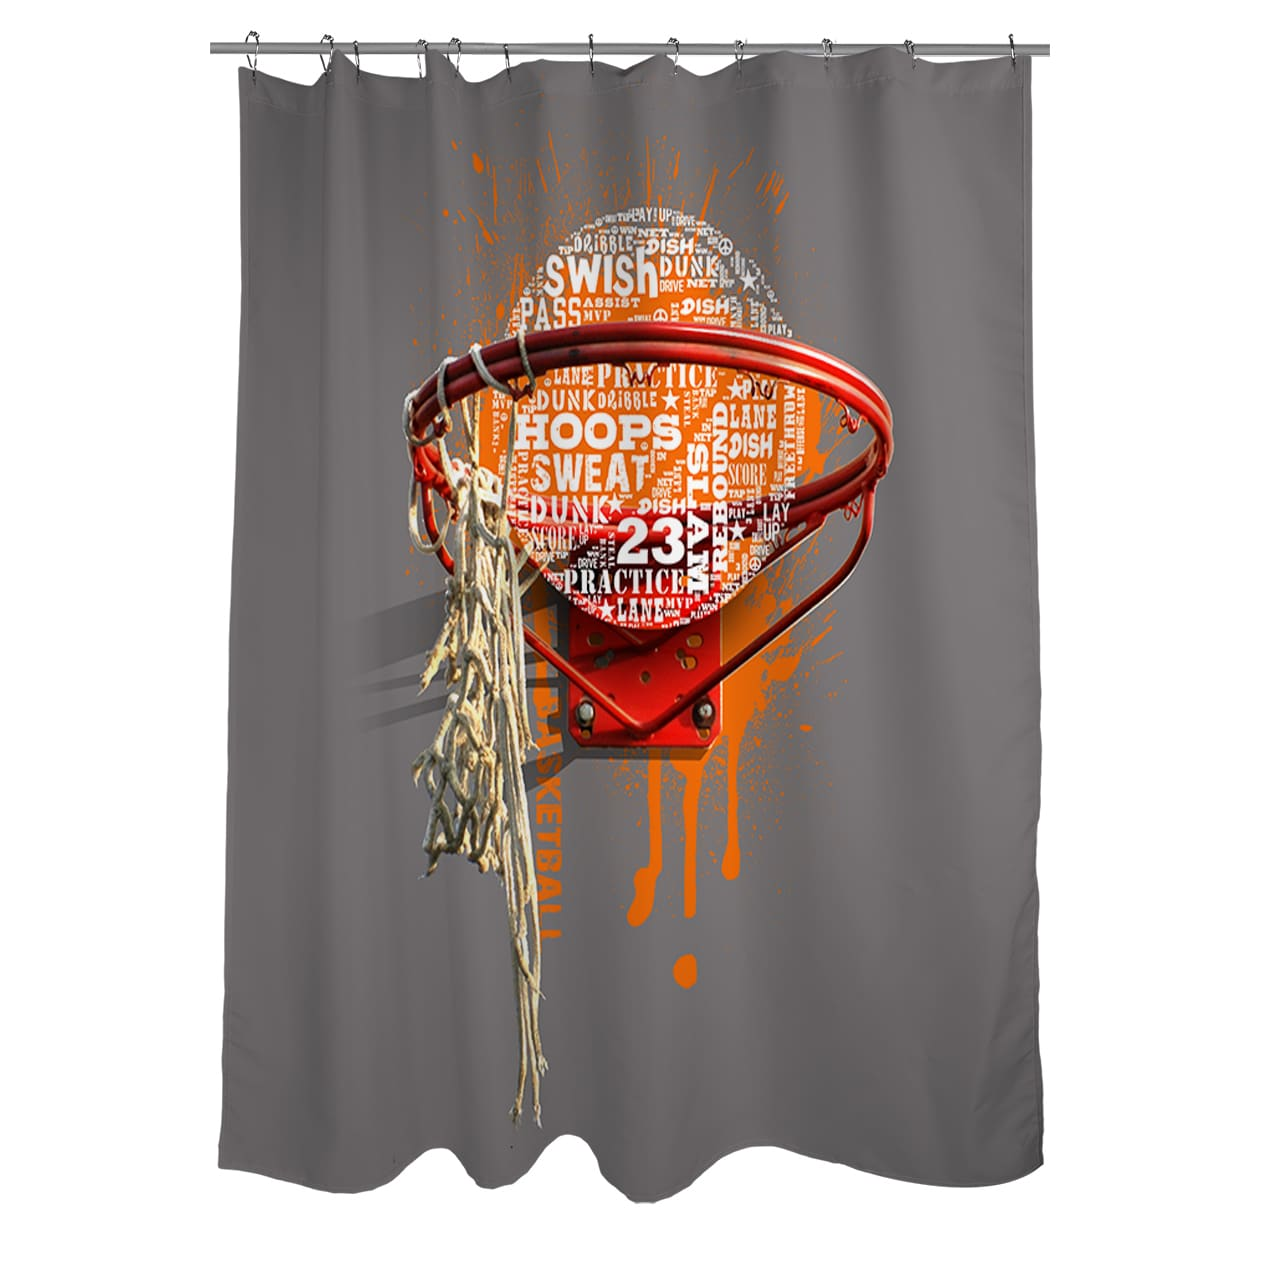 Sports Shower Curtain Basketball Tournament Print for Bathroom